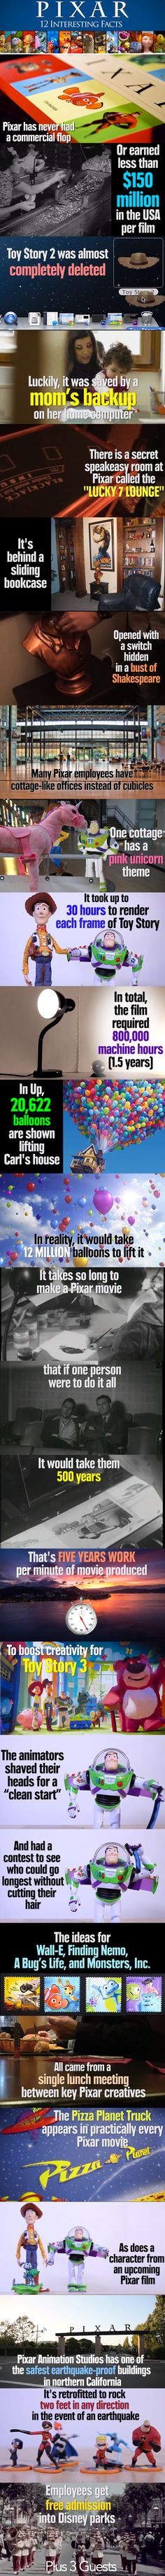 12 Interesting Facts about Disney's Pixar